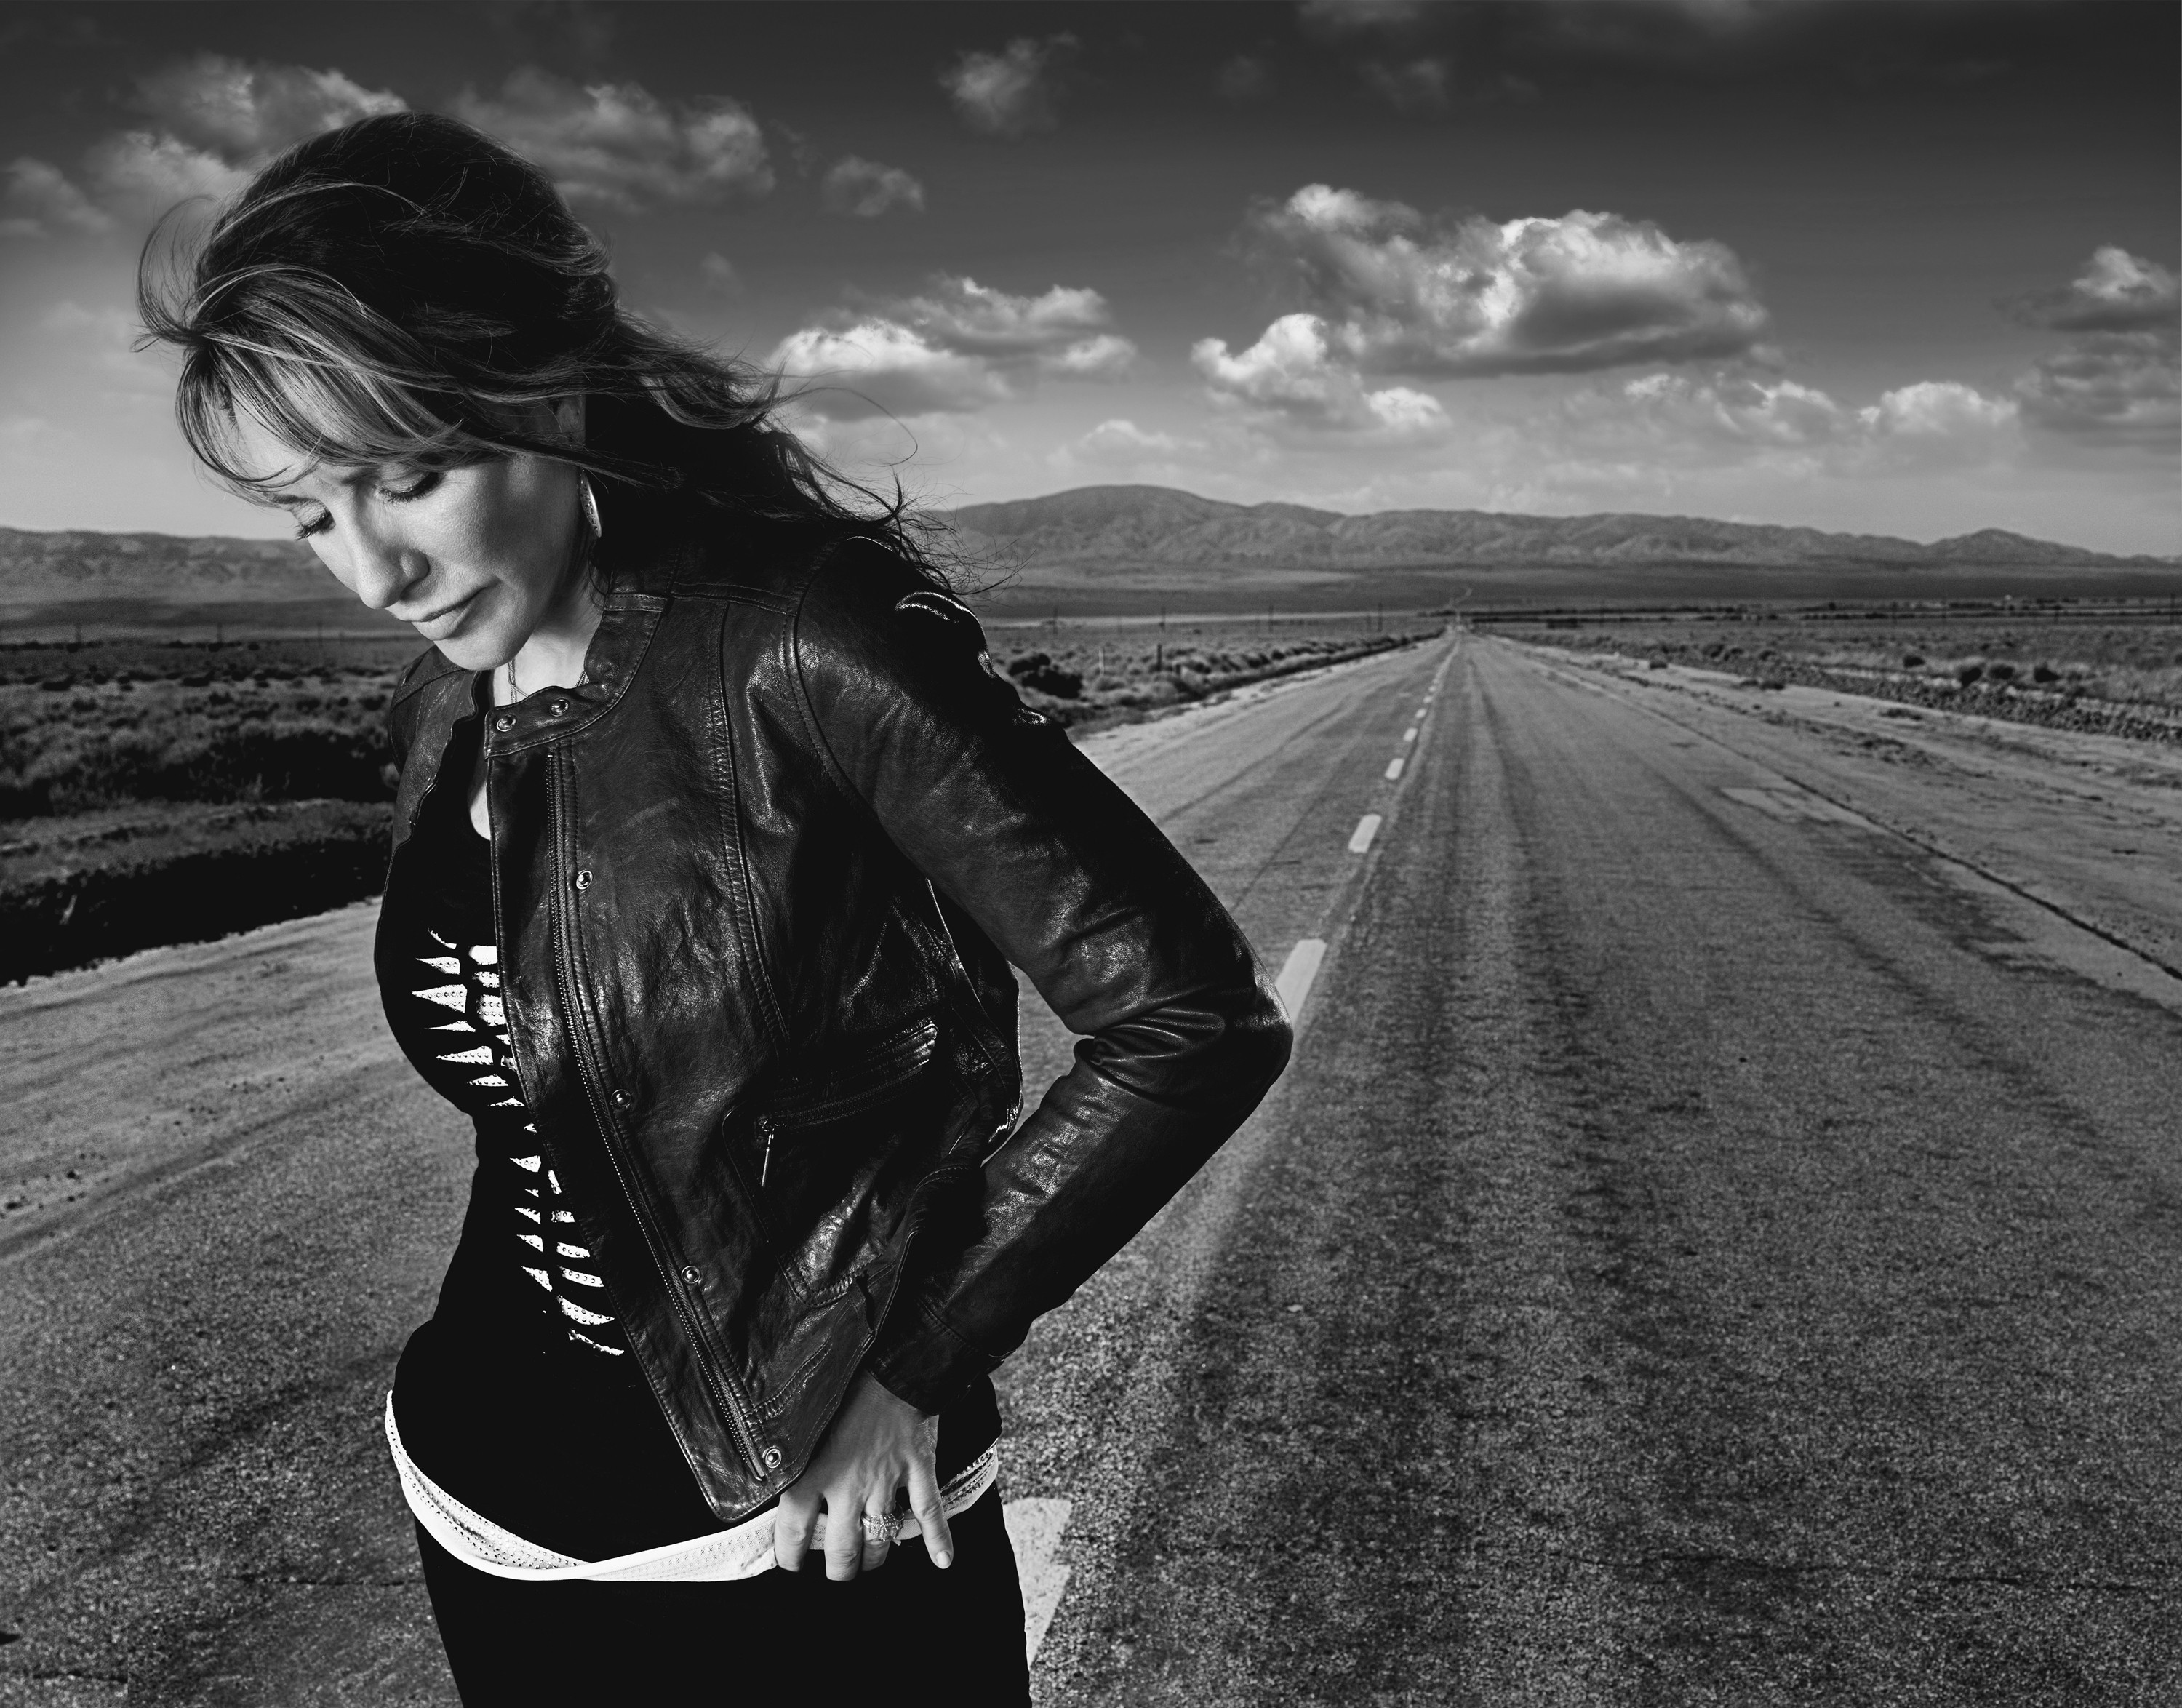 woman sons of anarchy HD Wallpaper